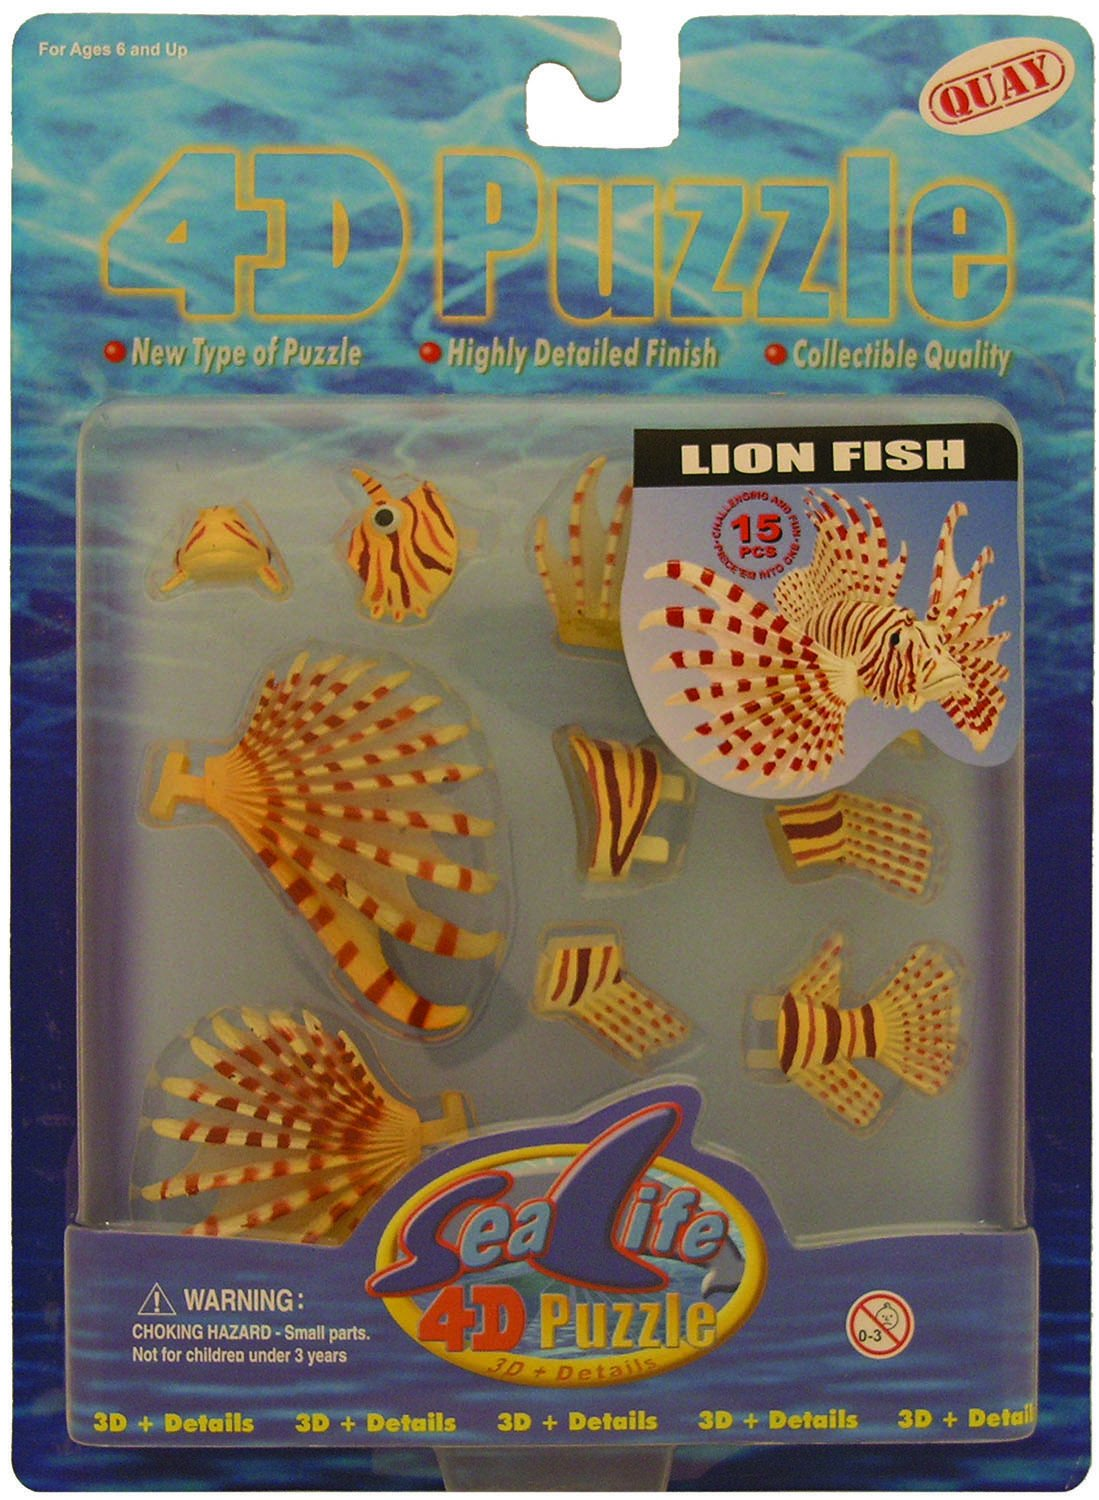 Quay Lion Fish- 4D Puzzle: Amazon.co.uk: Toys & Games